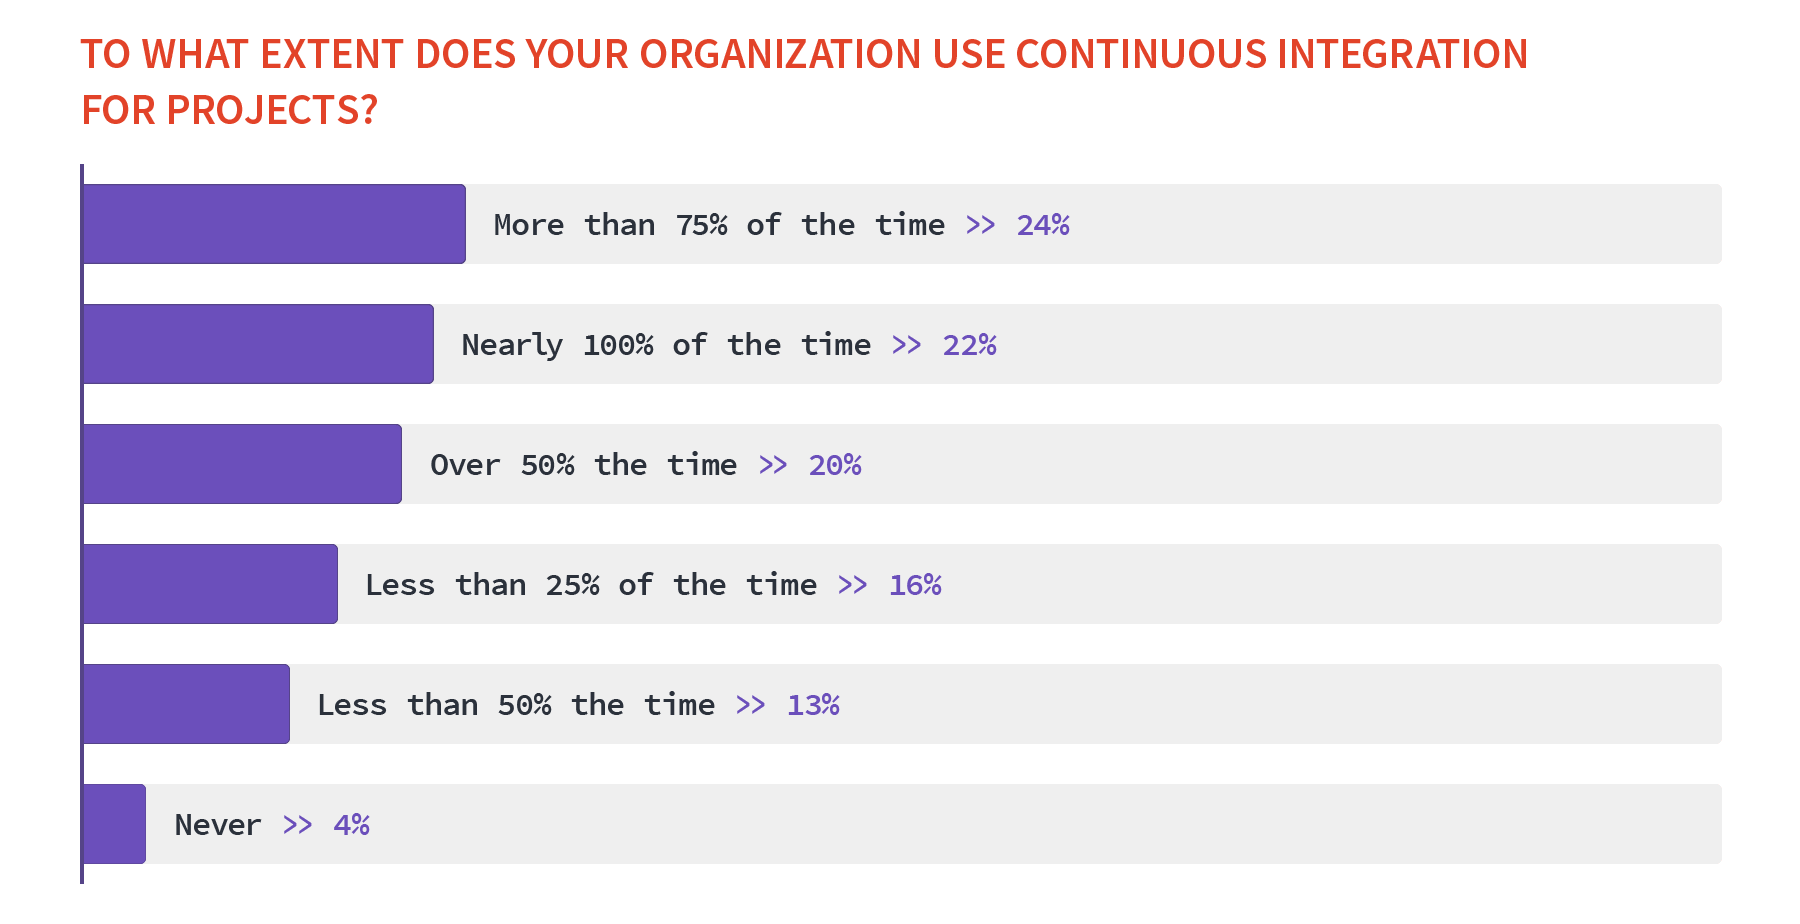 How much Continuous Integration is used